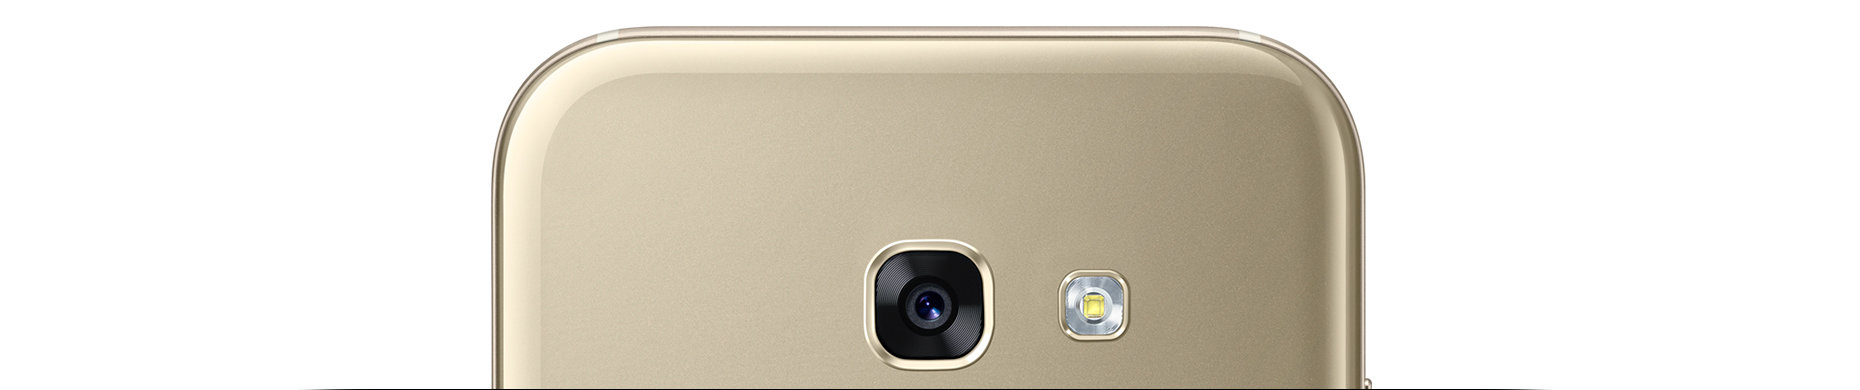 Samsung Galaxy A5 Gold Back Aparat